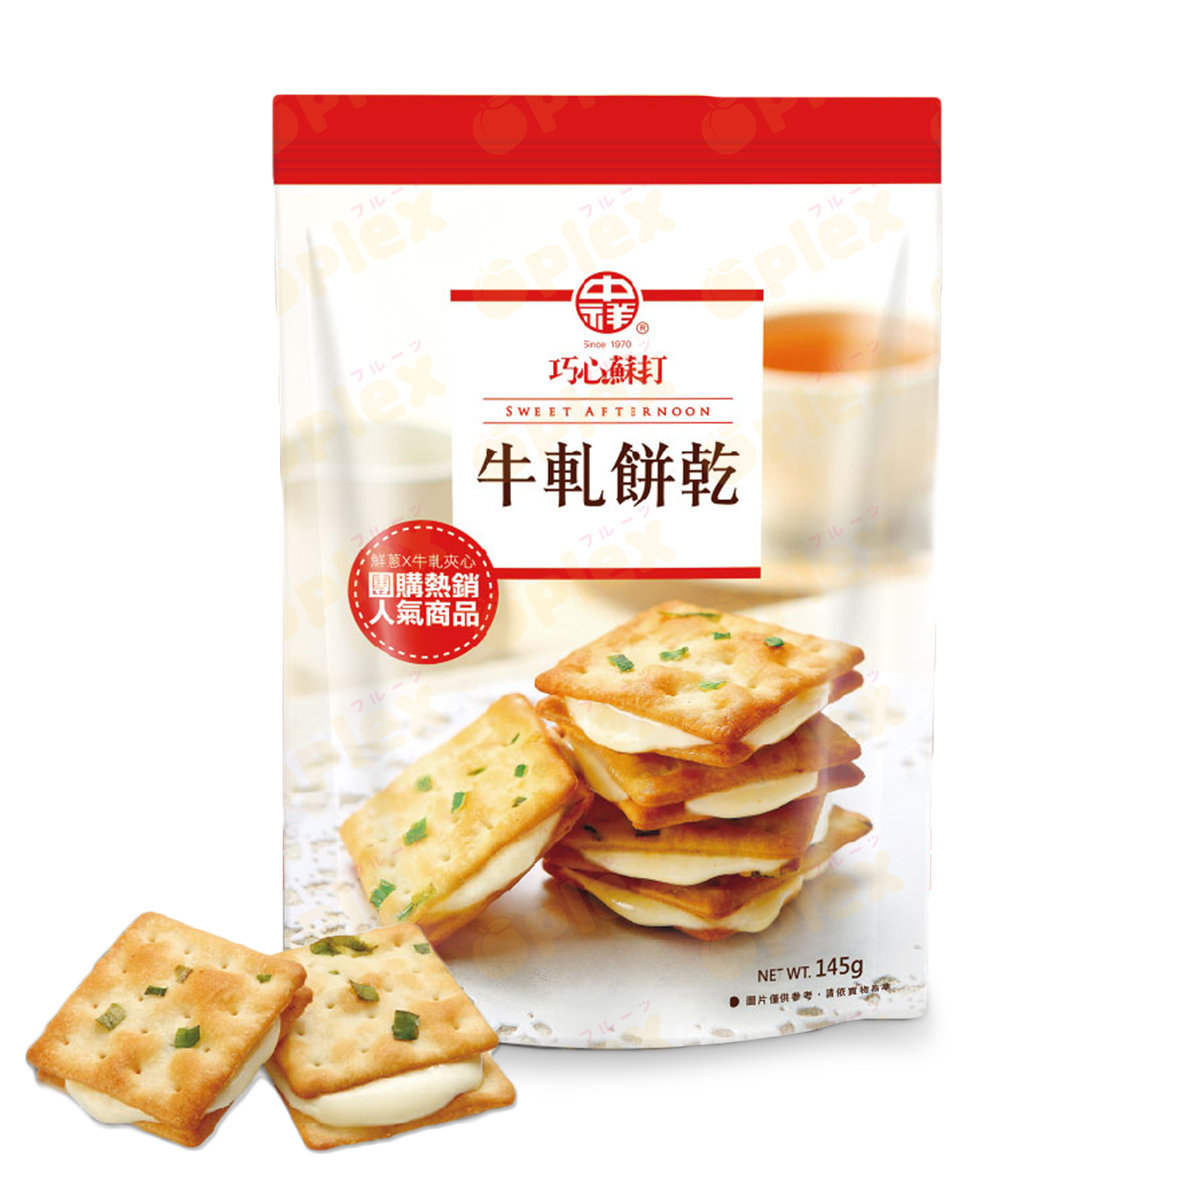 Sweet Afternoon - Nougat Sandwich Crackers 10packs (145g)